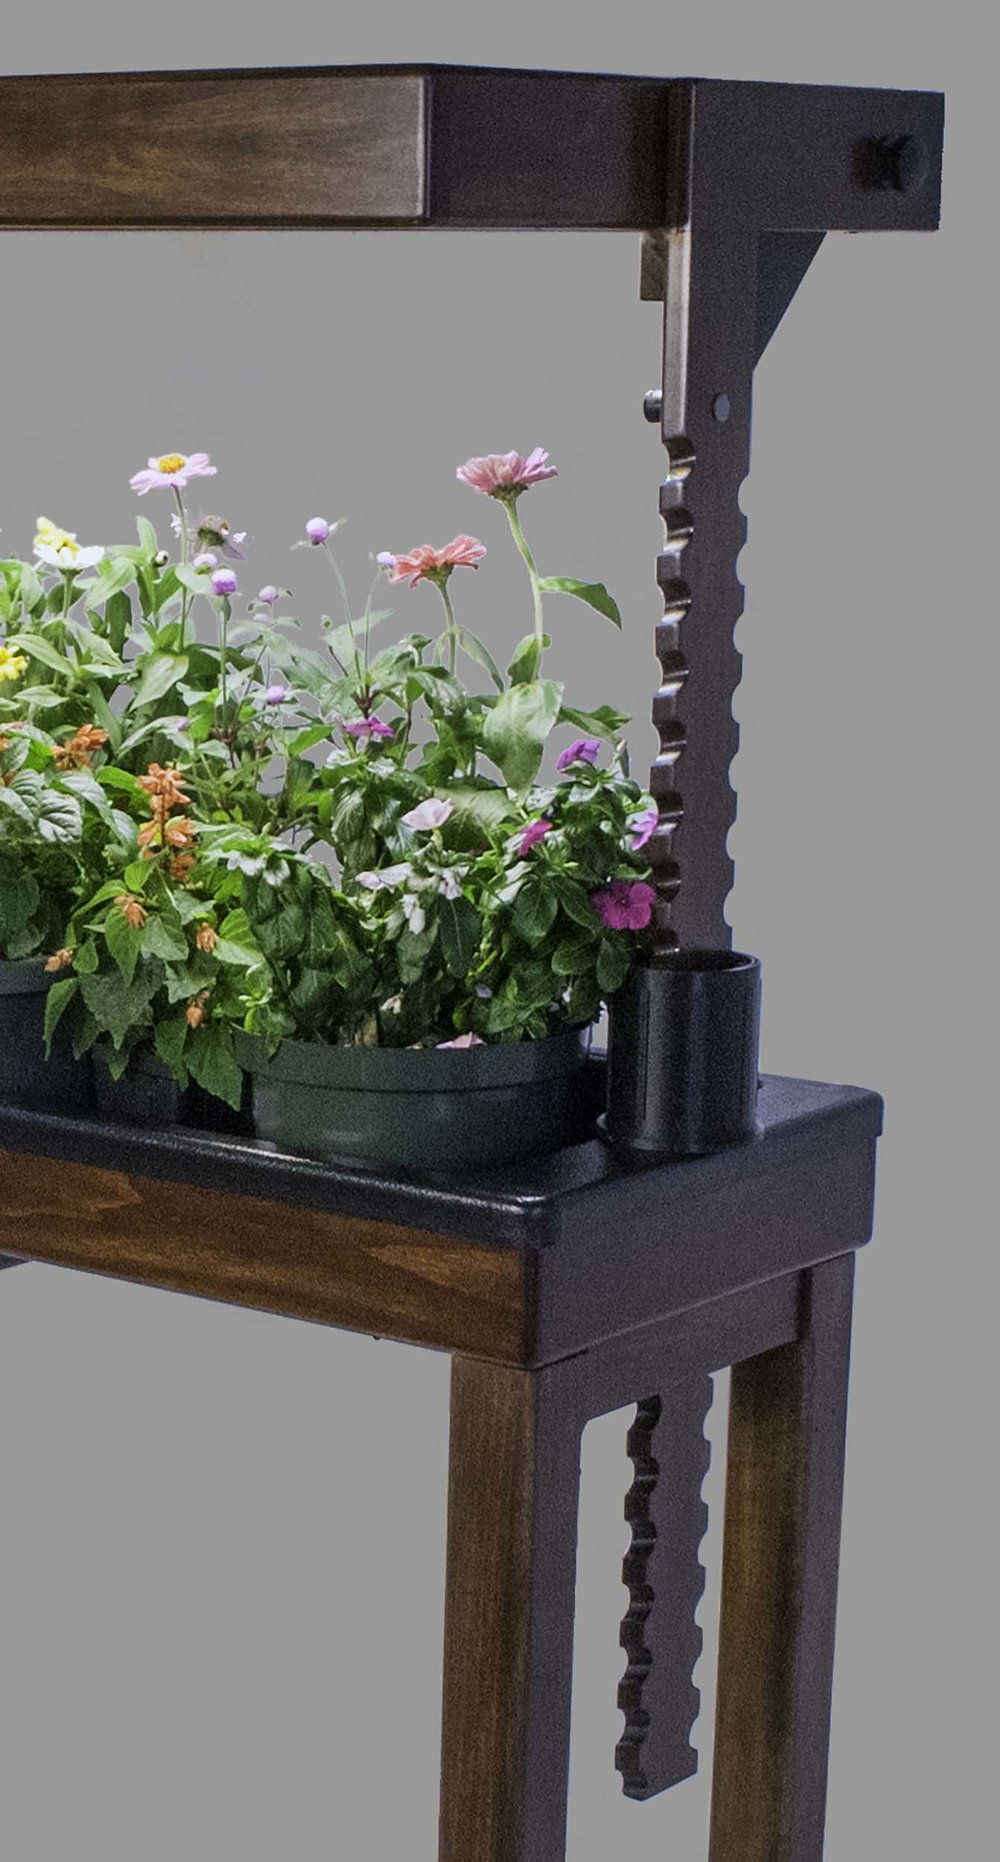 Raise the height of the grow lights as your plants grow